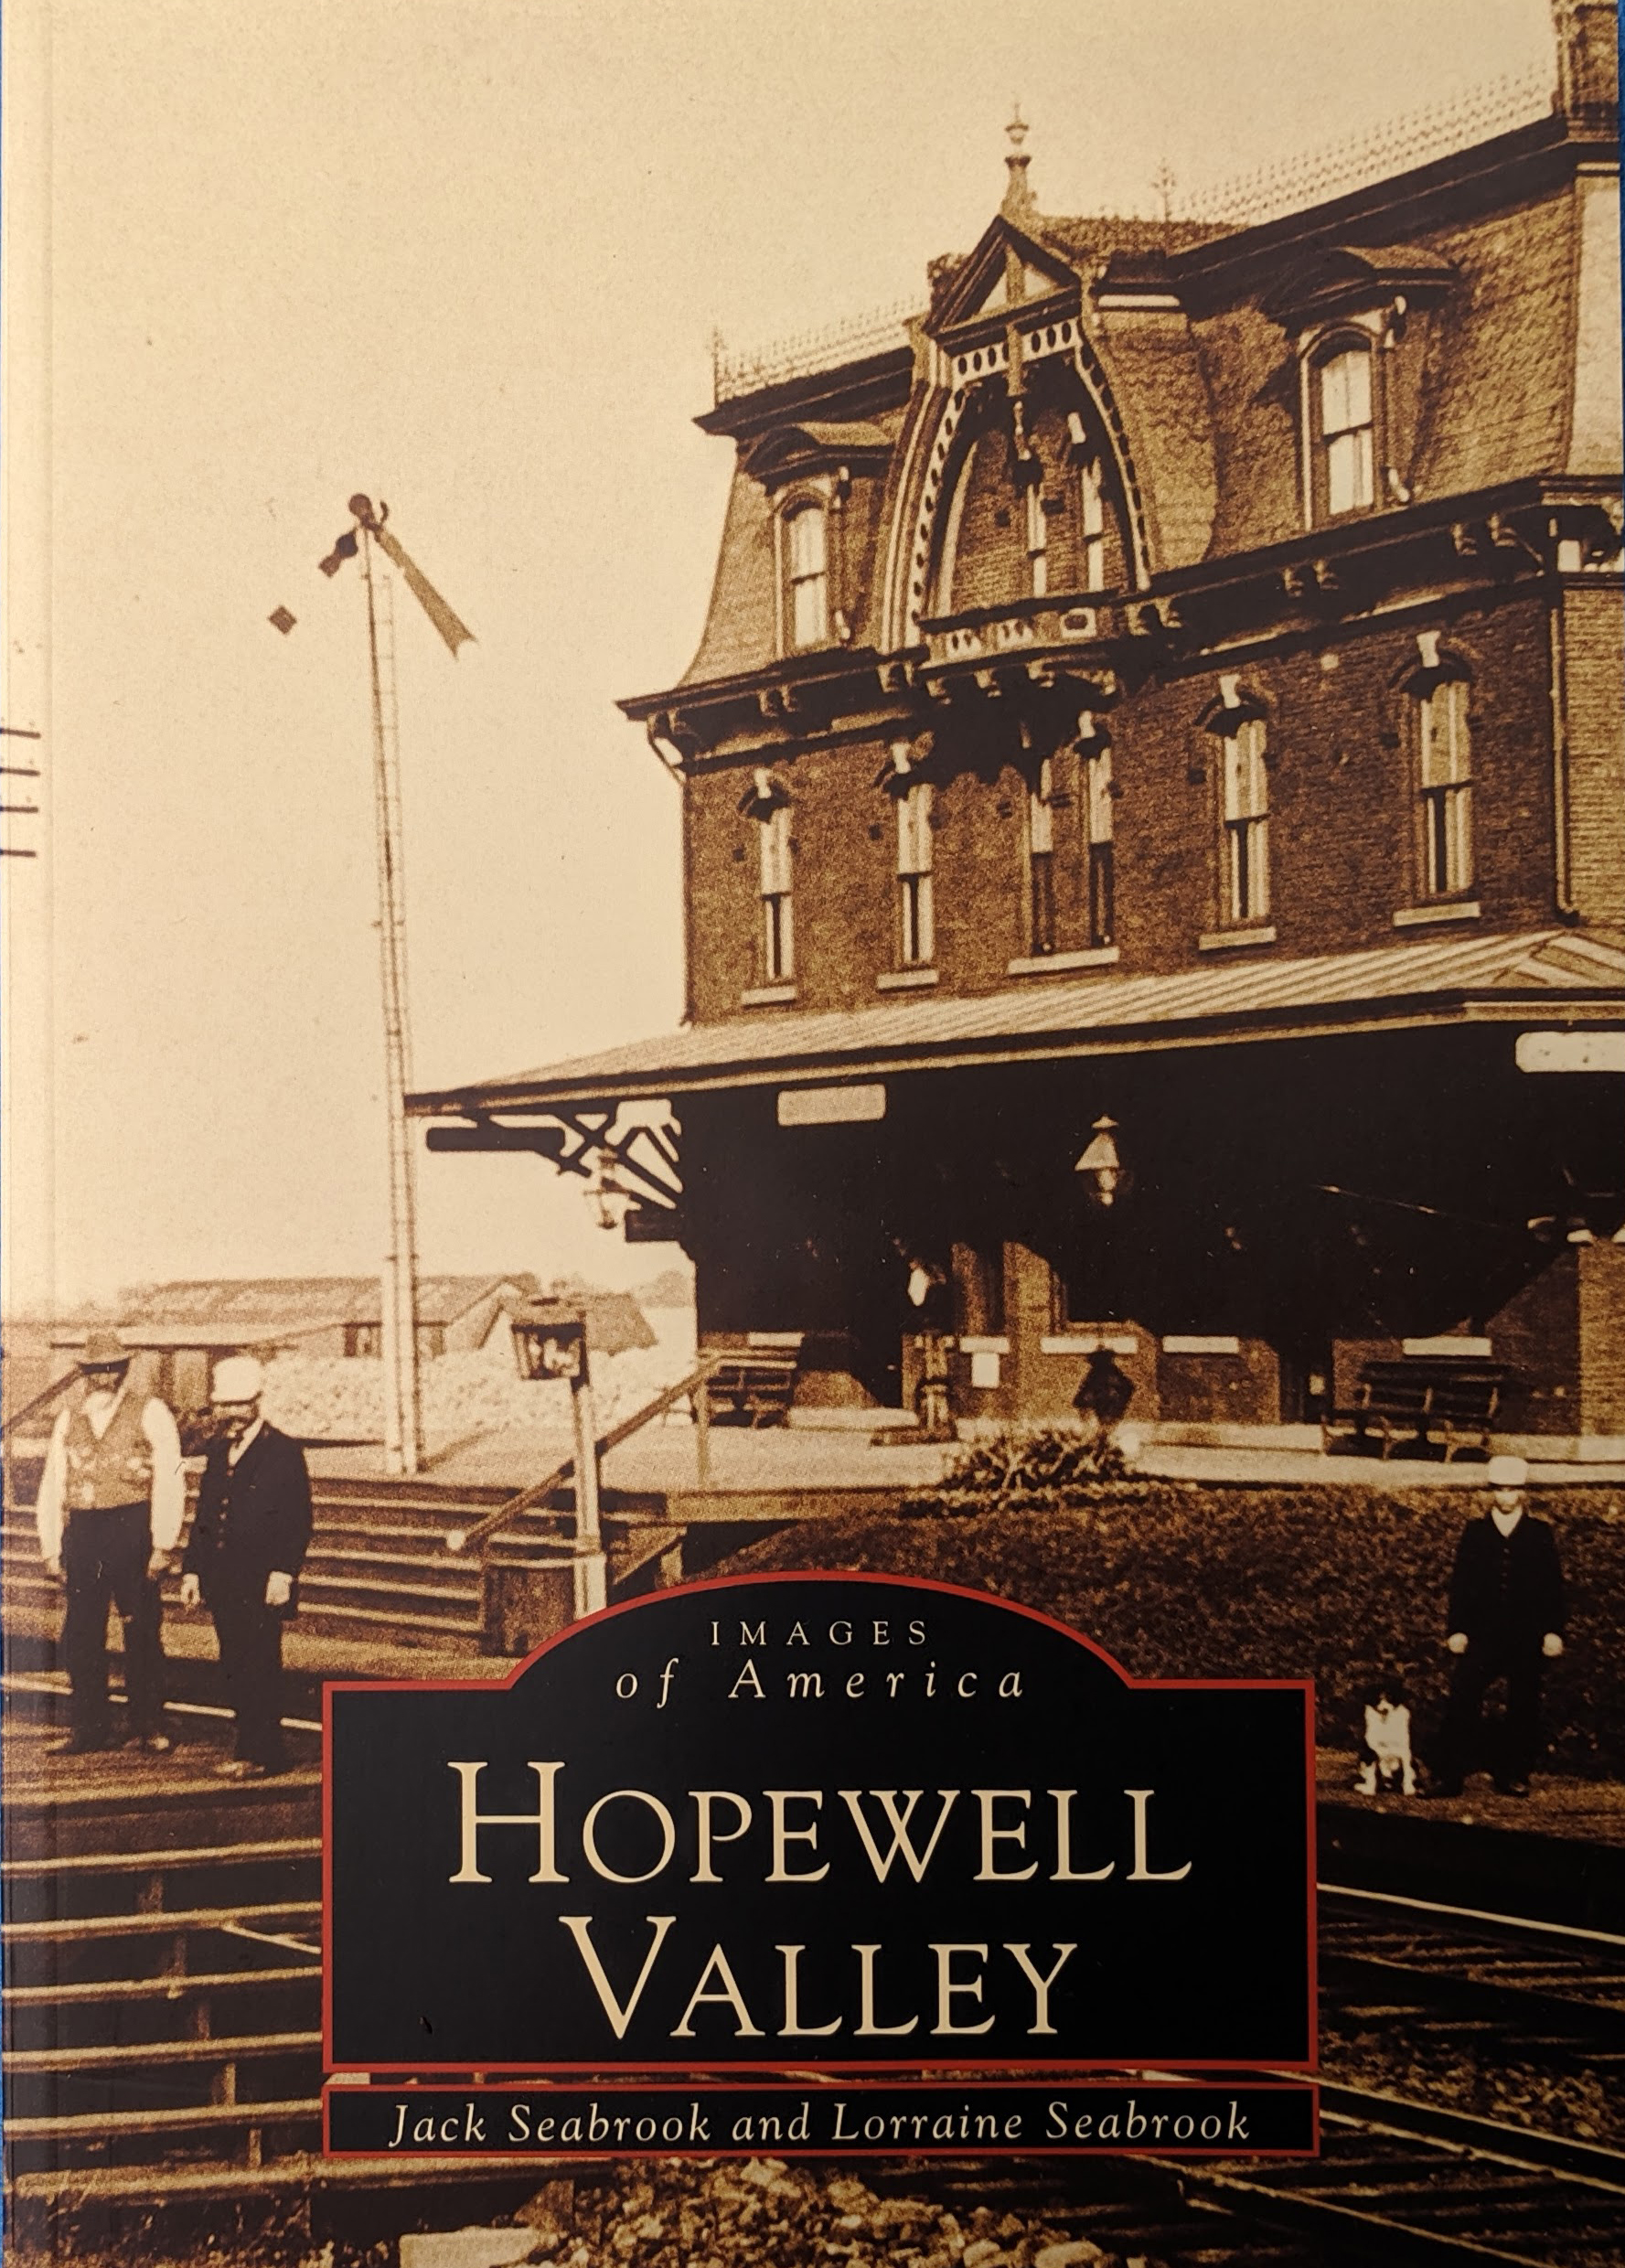 Images of America: Hopewell Valley    $20